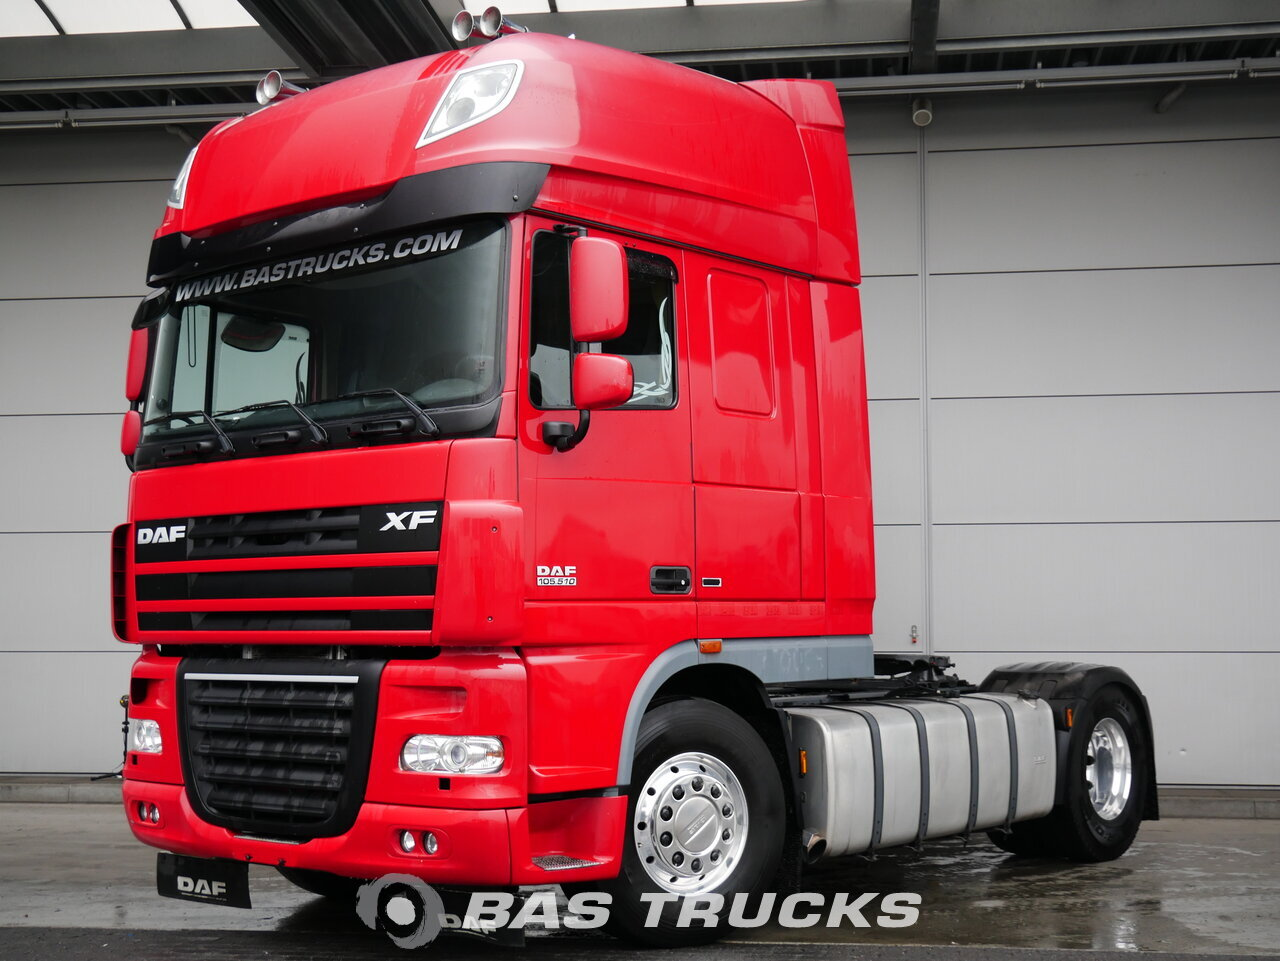 For sale at BAS Trucks: DAF XF105 510 SSC 4X2 06/2013